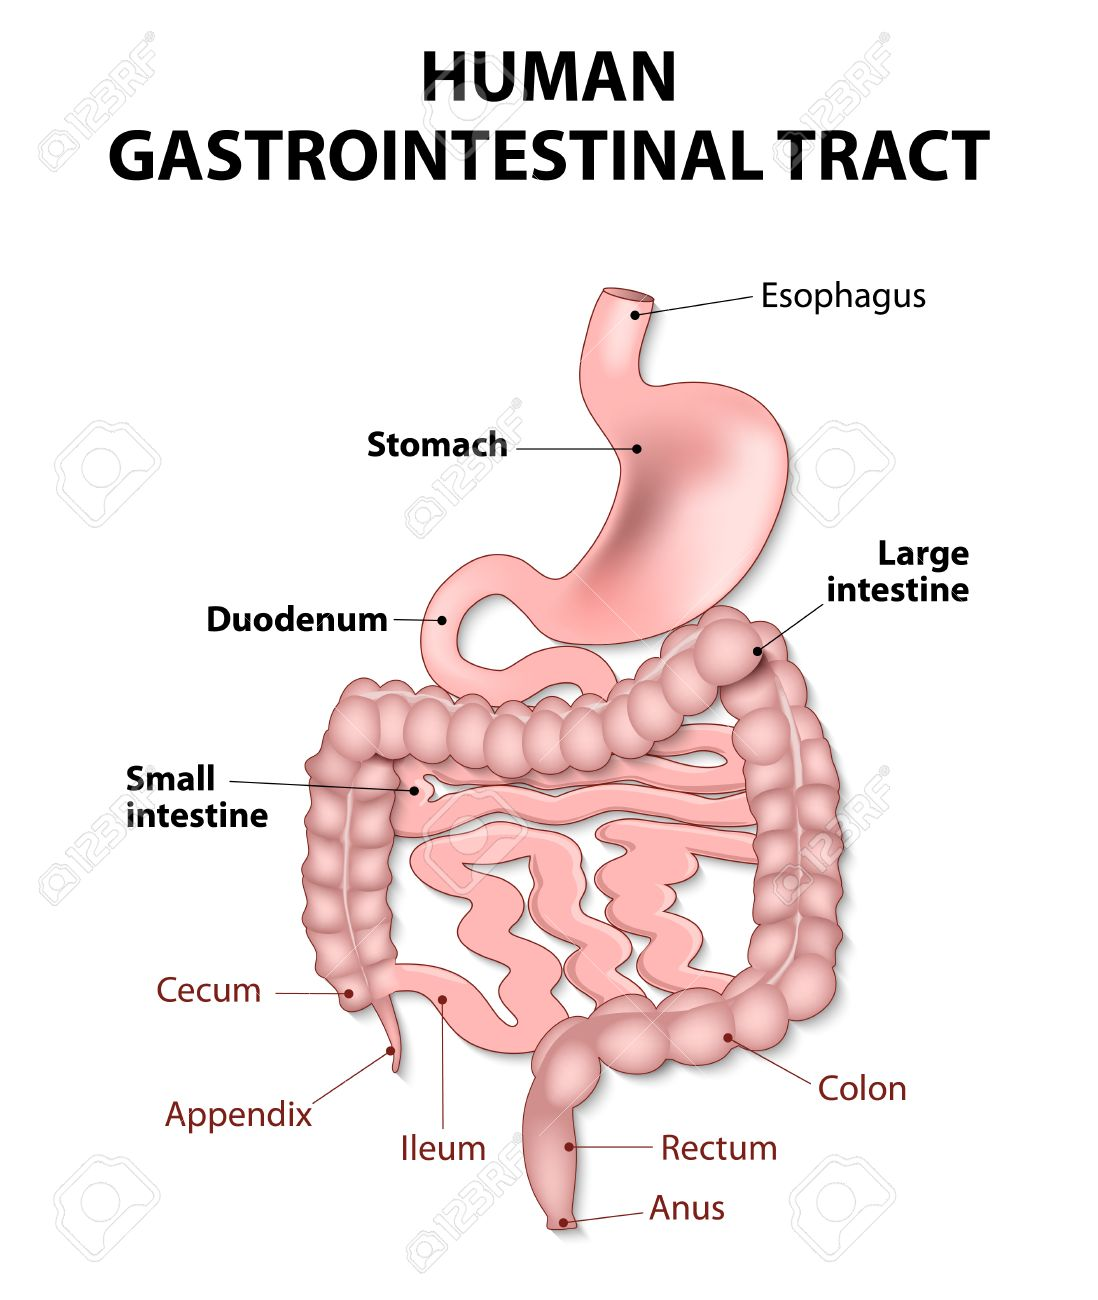 Gastrointestinal Tract Includes All Structures Between The Esophagus ...